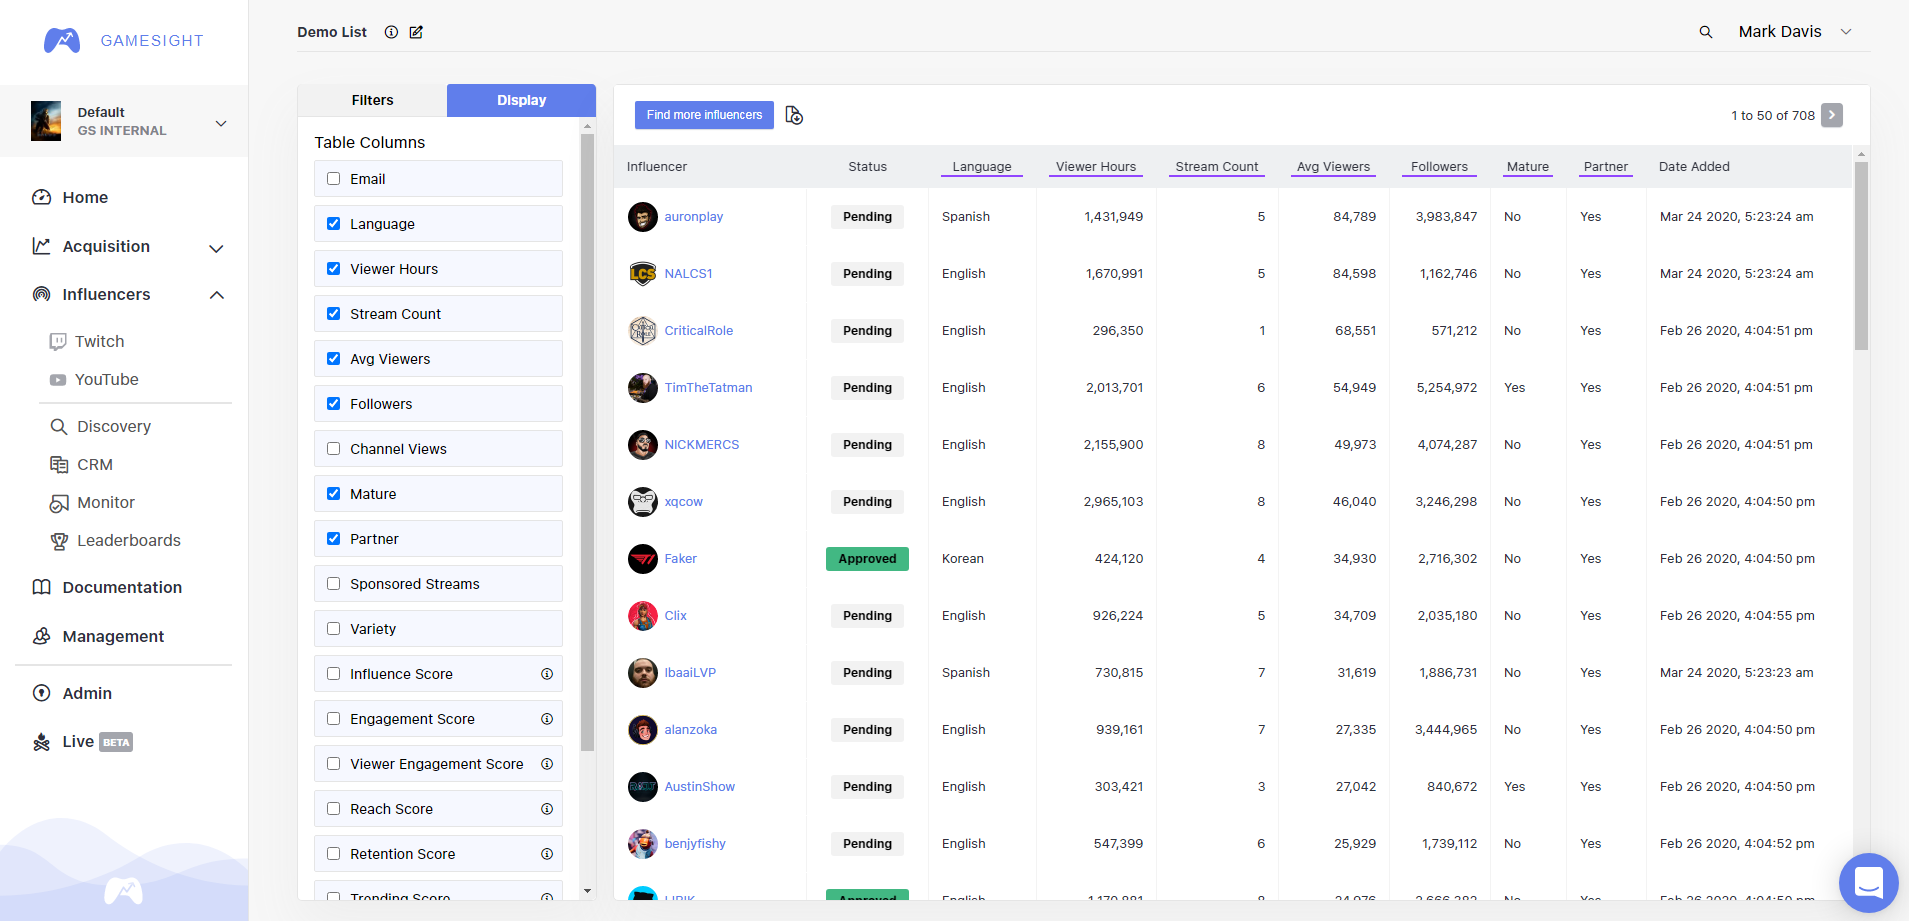 CRM tooling combines relationship details with live stats